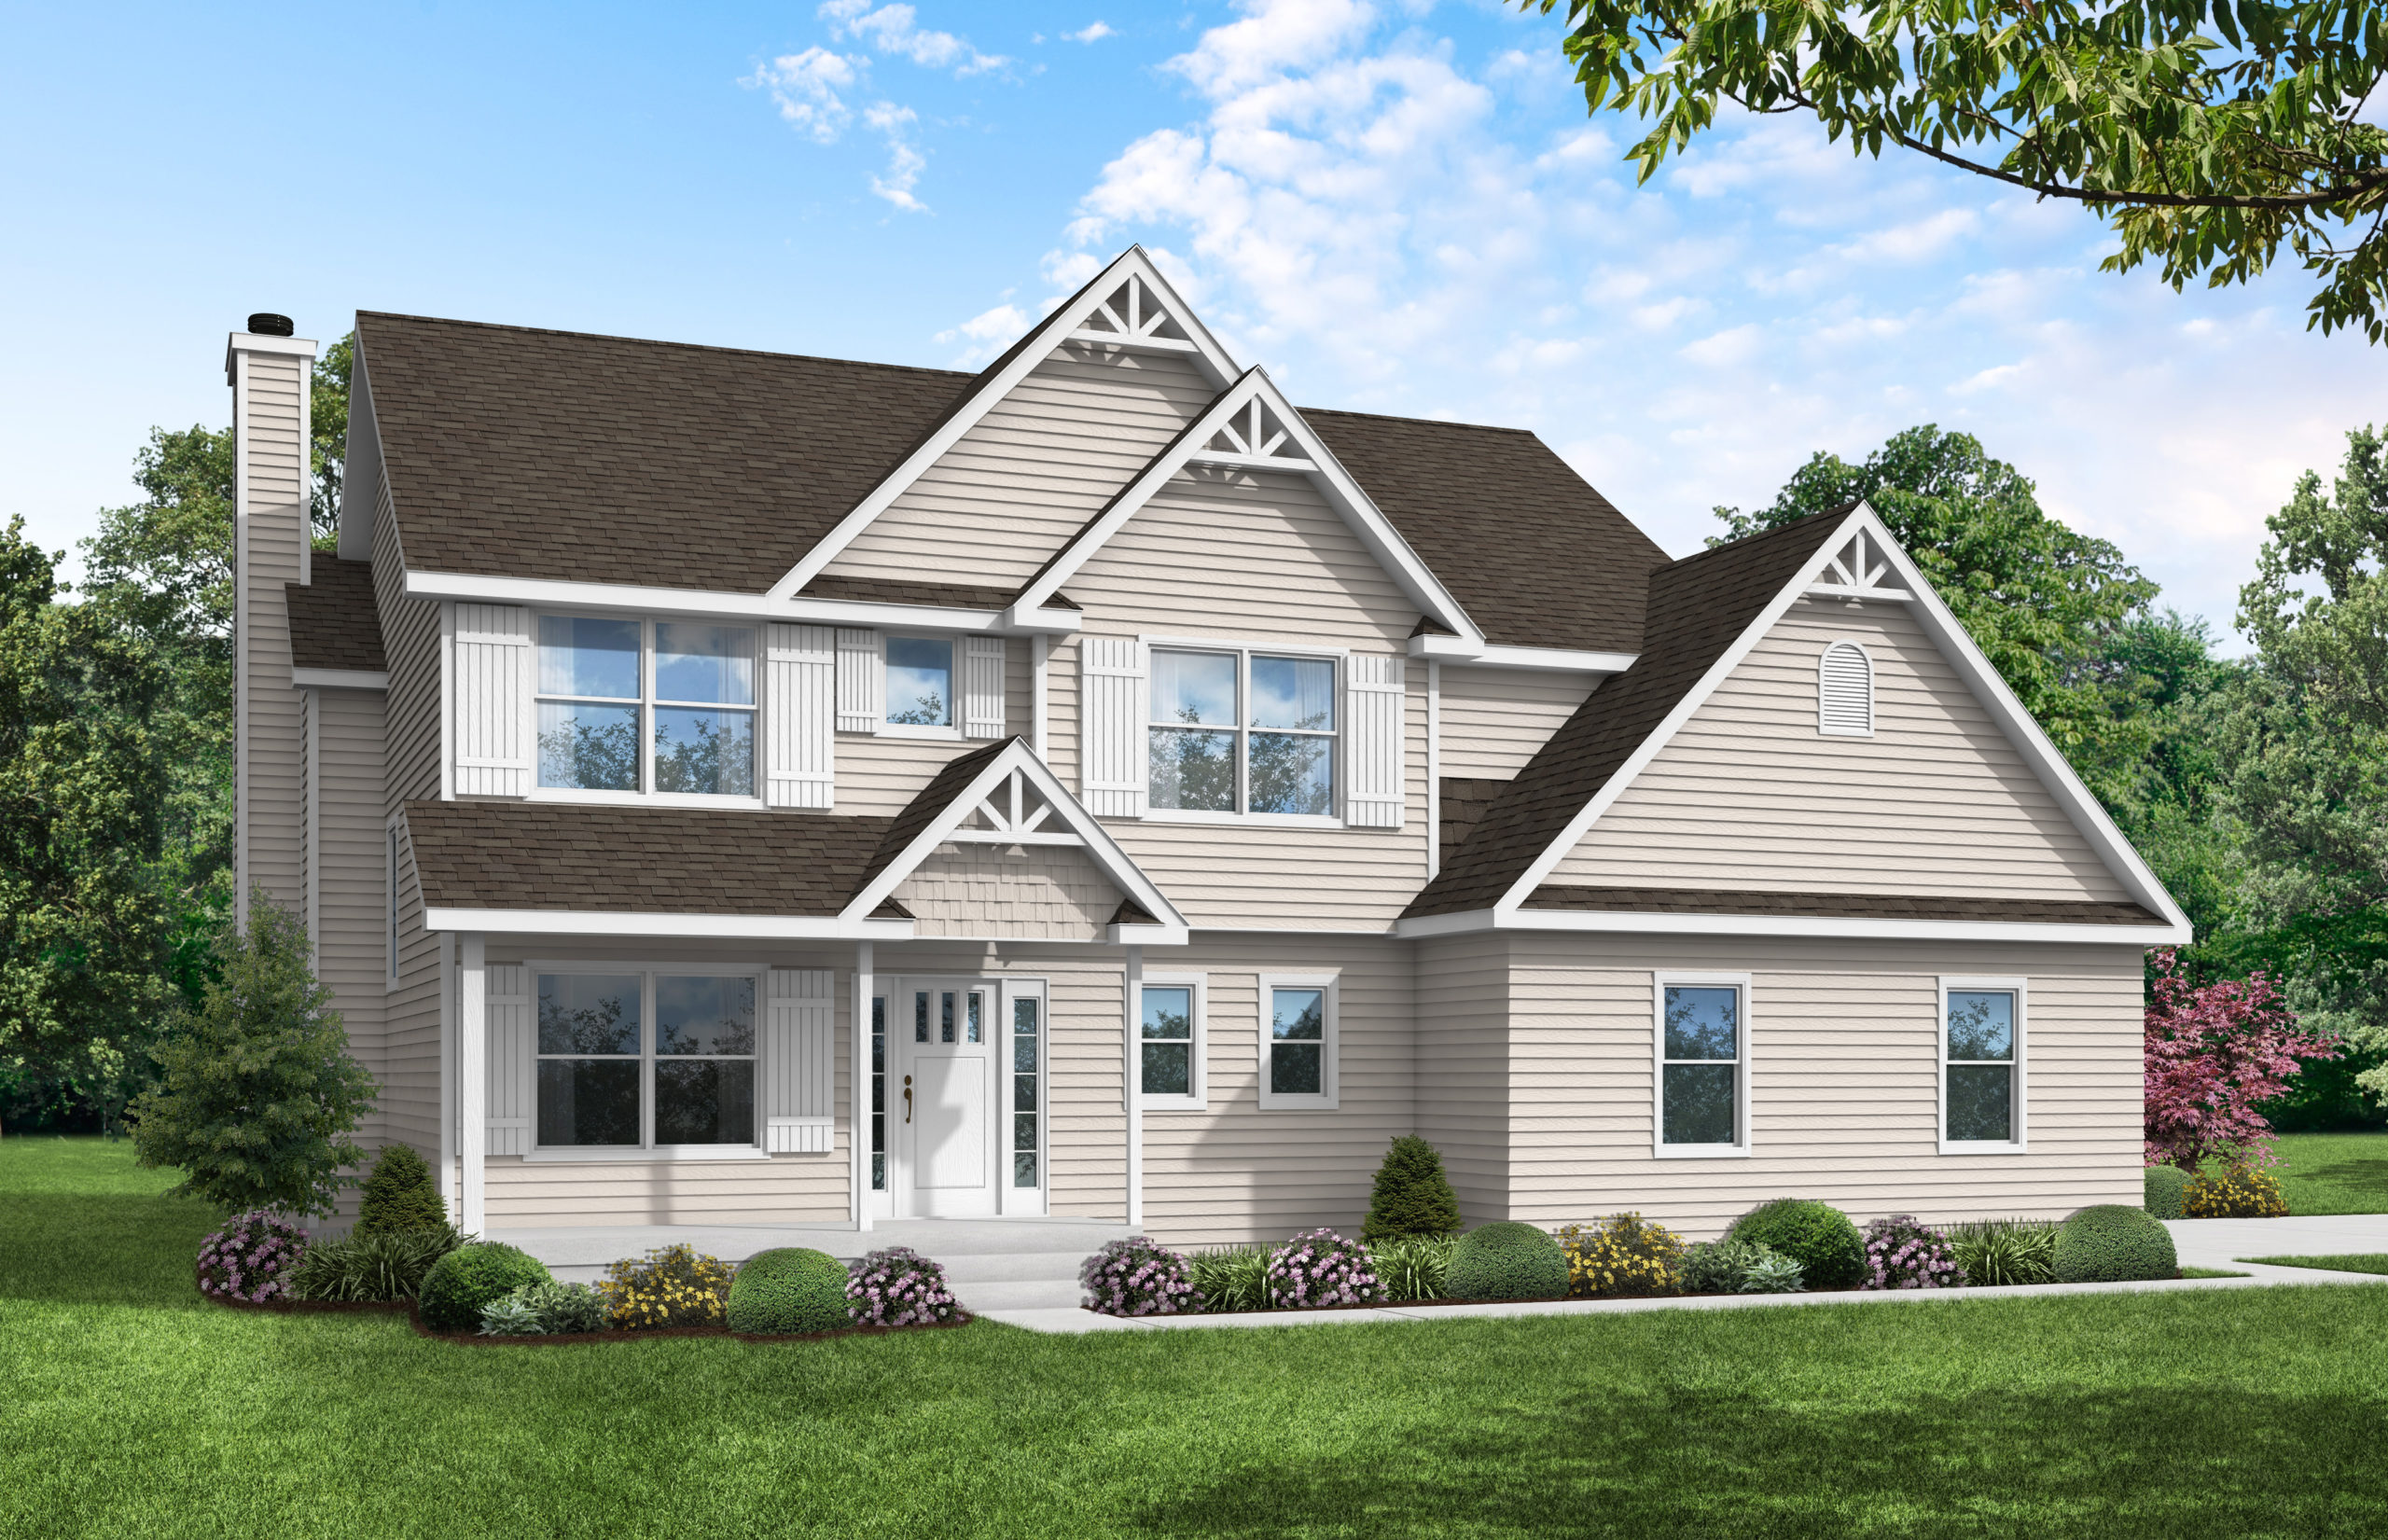 The Claremont at Ascent Lot 4